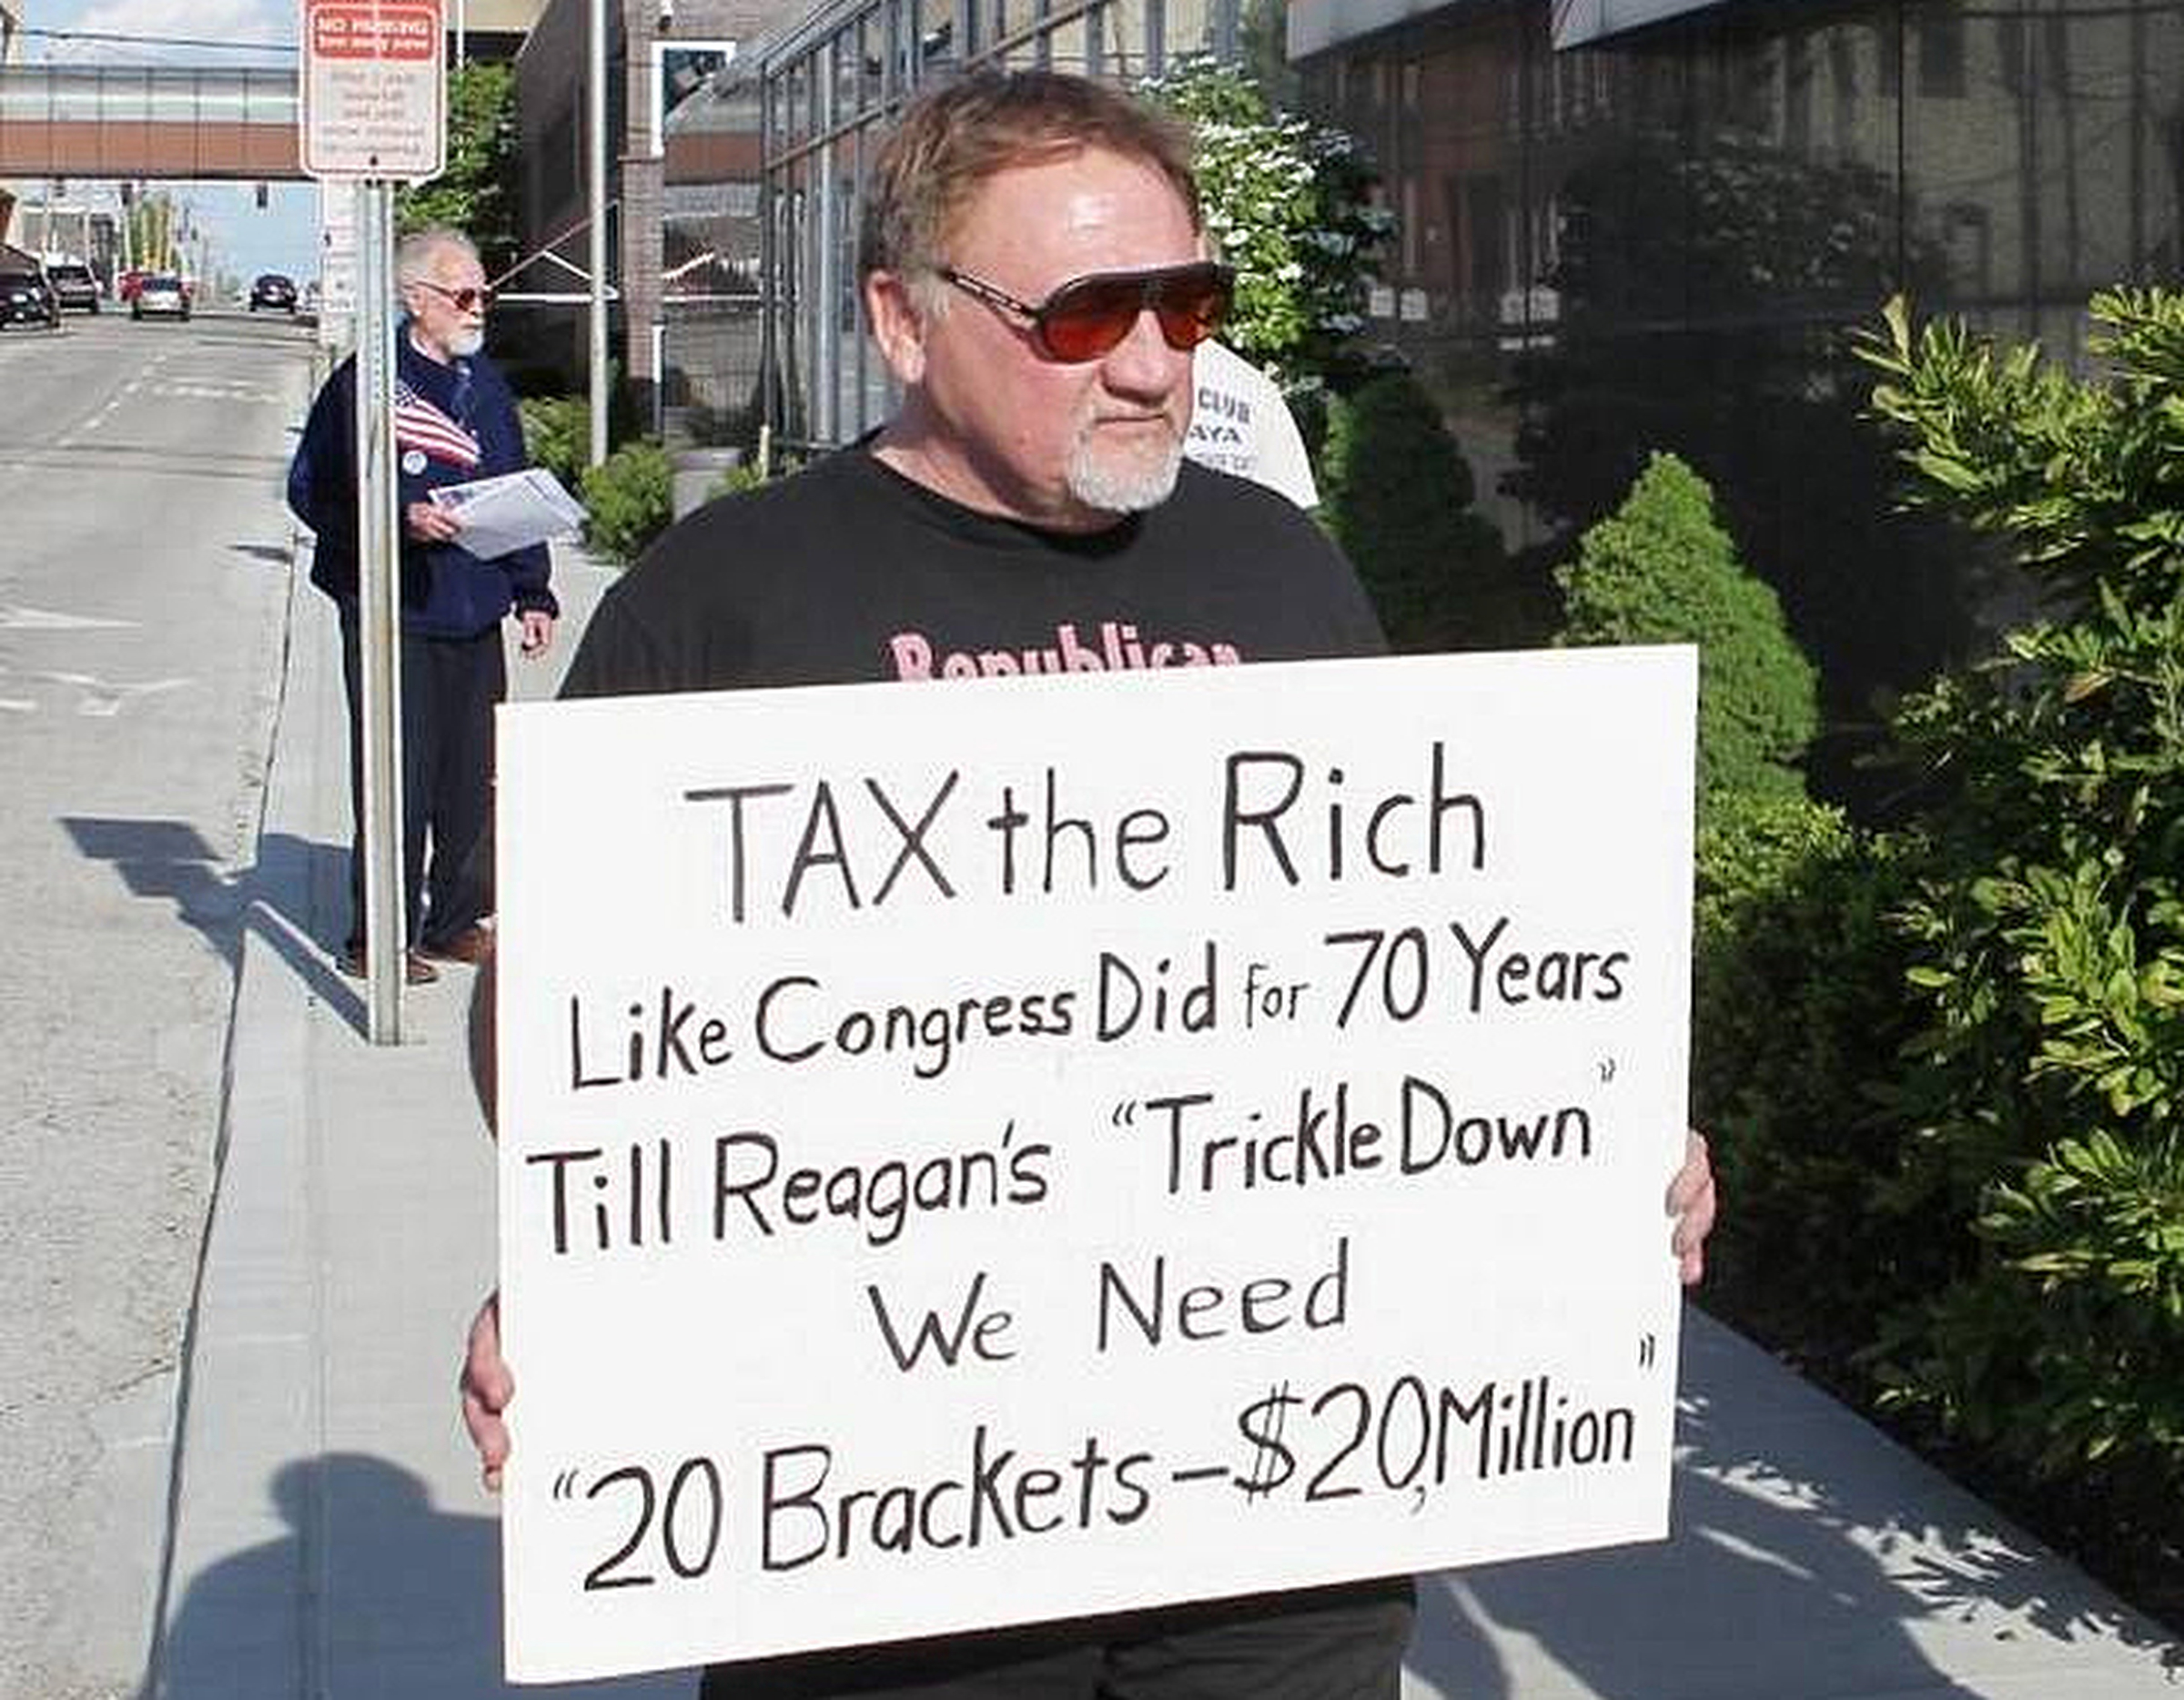 In this undated file photo, James Hodgkinson holds a sign during a protest outside of a United States Post Office in Belleville, Ill. Hodgkinson has been identified as the suspect in the Wednesday, June 14, 2017, Washington D.C. shooting. (Derik Holtmann/Belleville News-Democrat via AP)